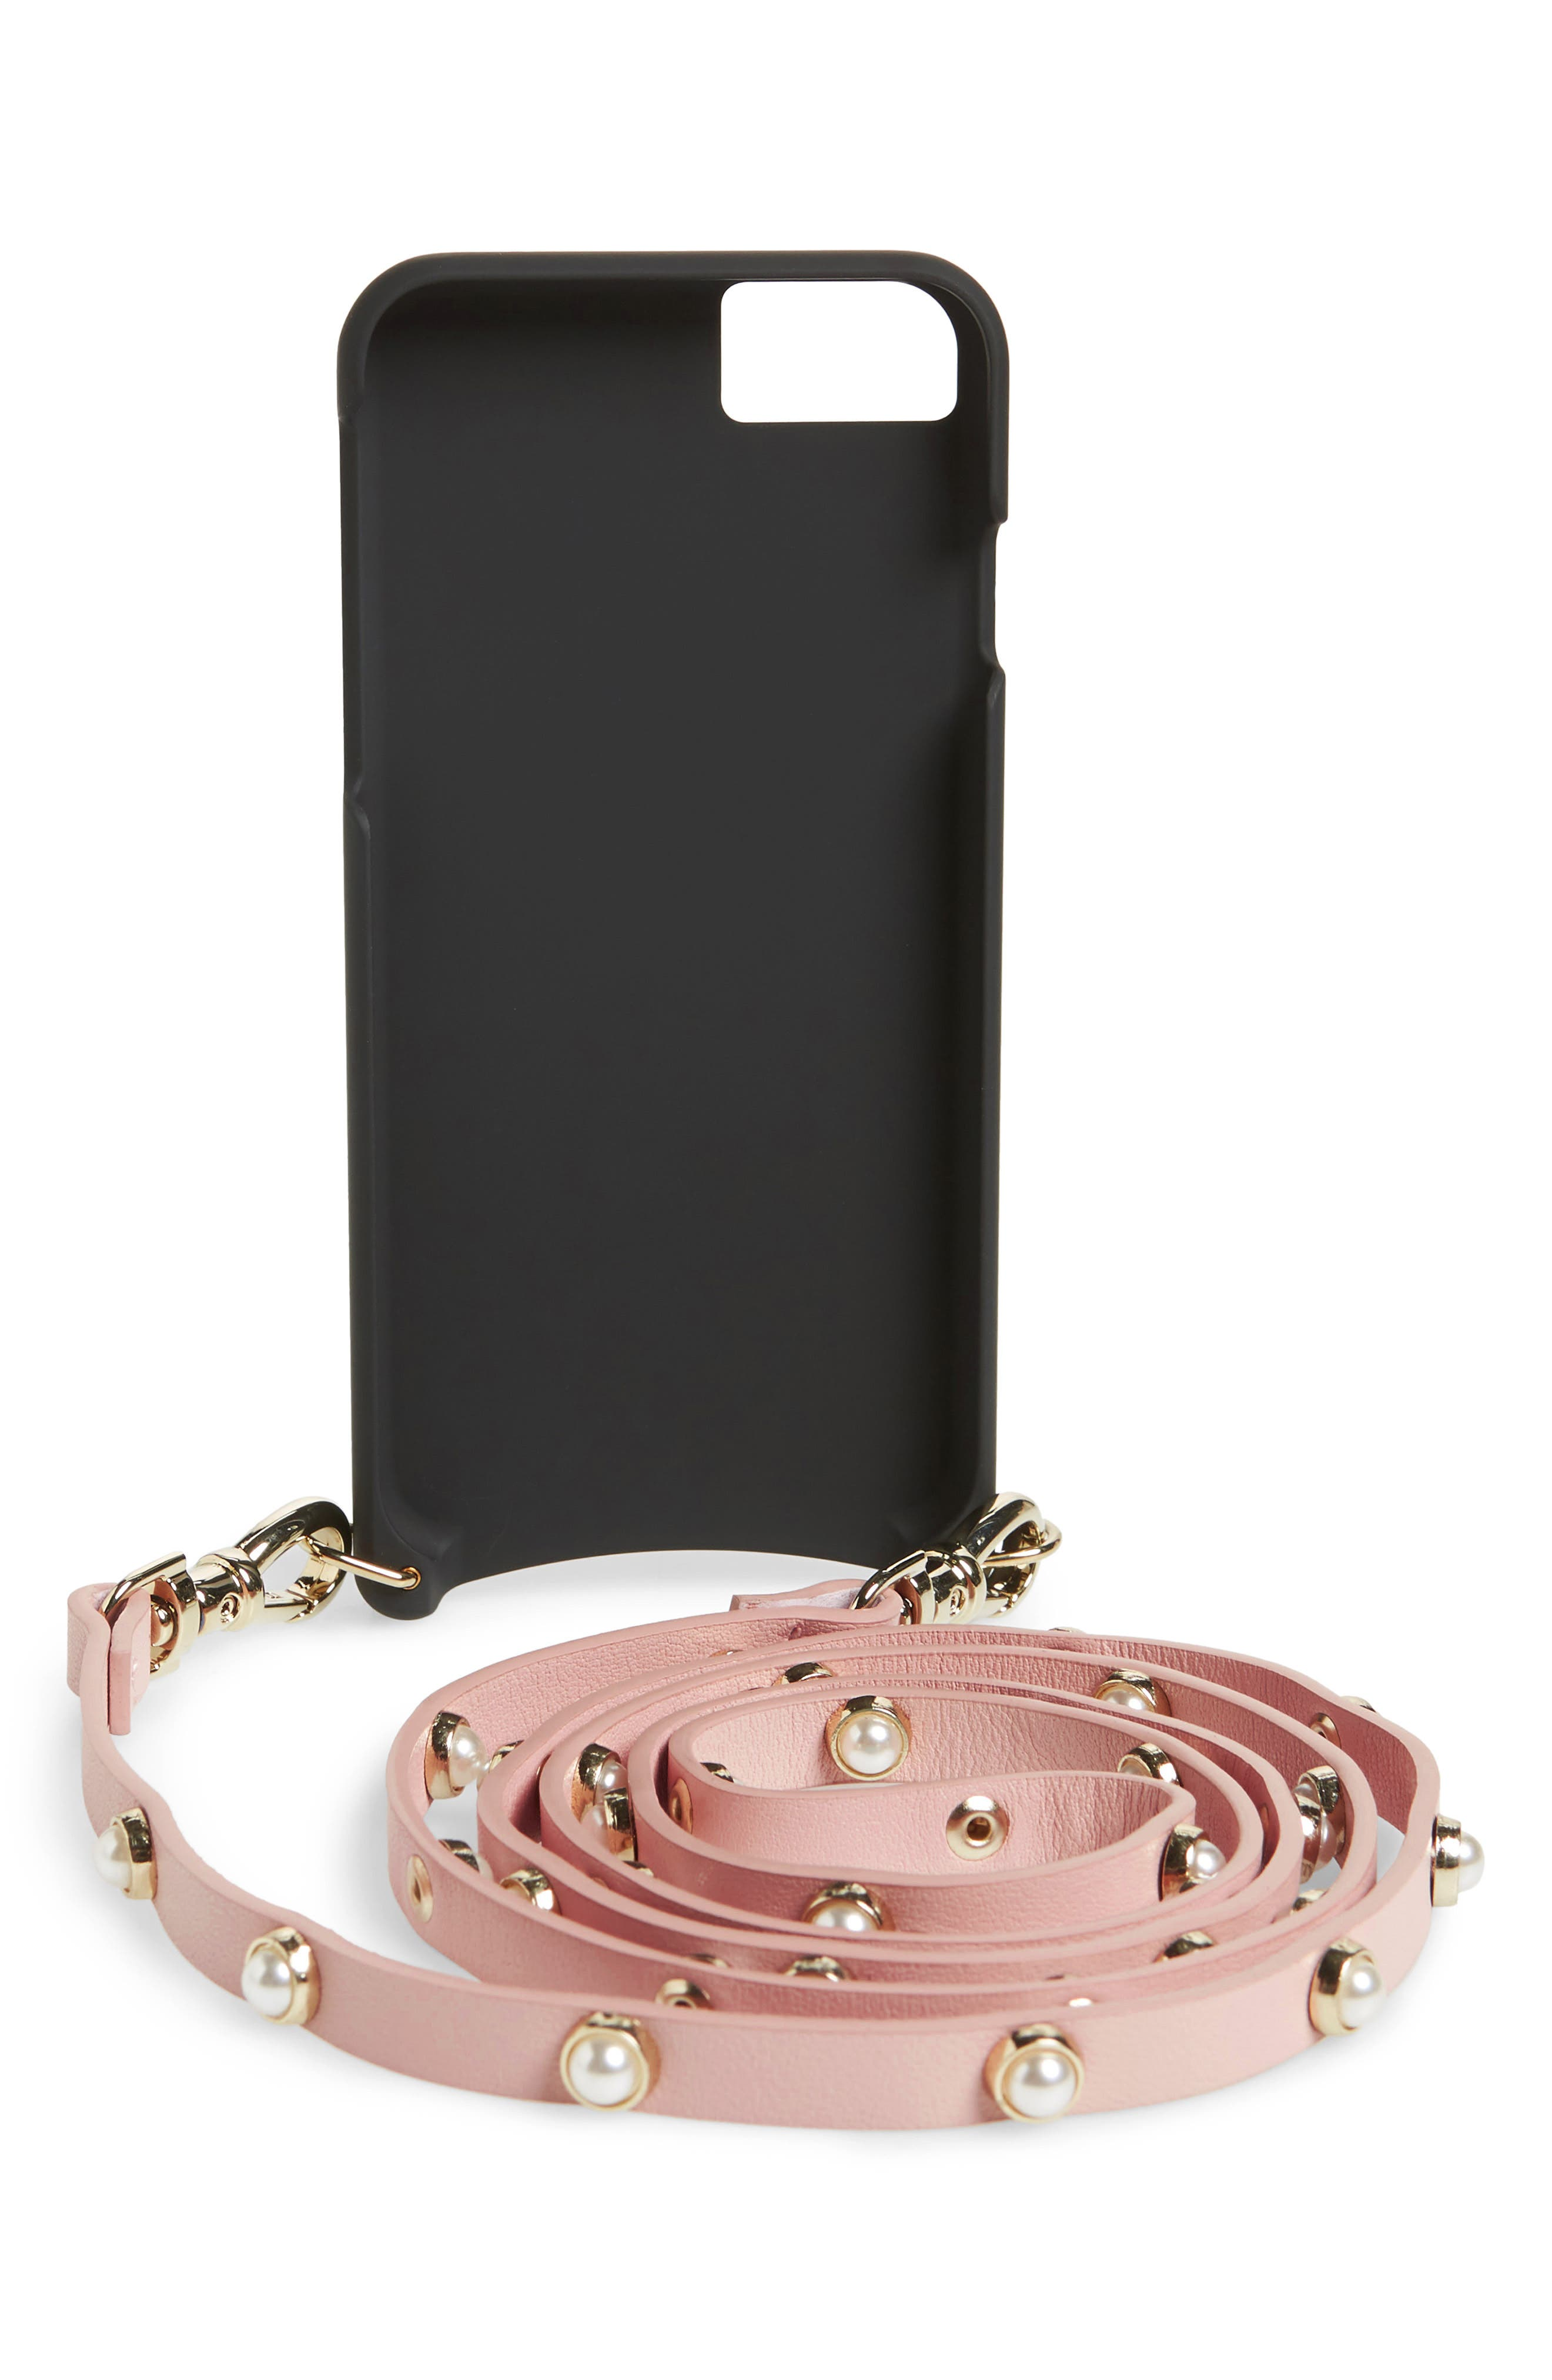 Claire Leather iPhone 7/8 & 7/8 Plus Crossbody Case,                             Alternate thumbnail 3, color,                             Pink/ Pearl